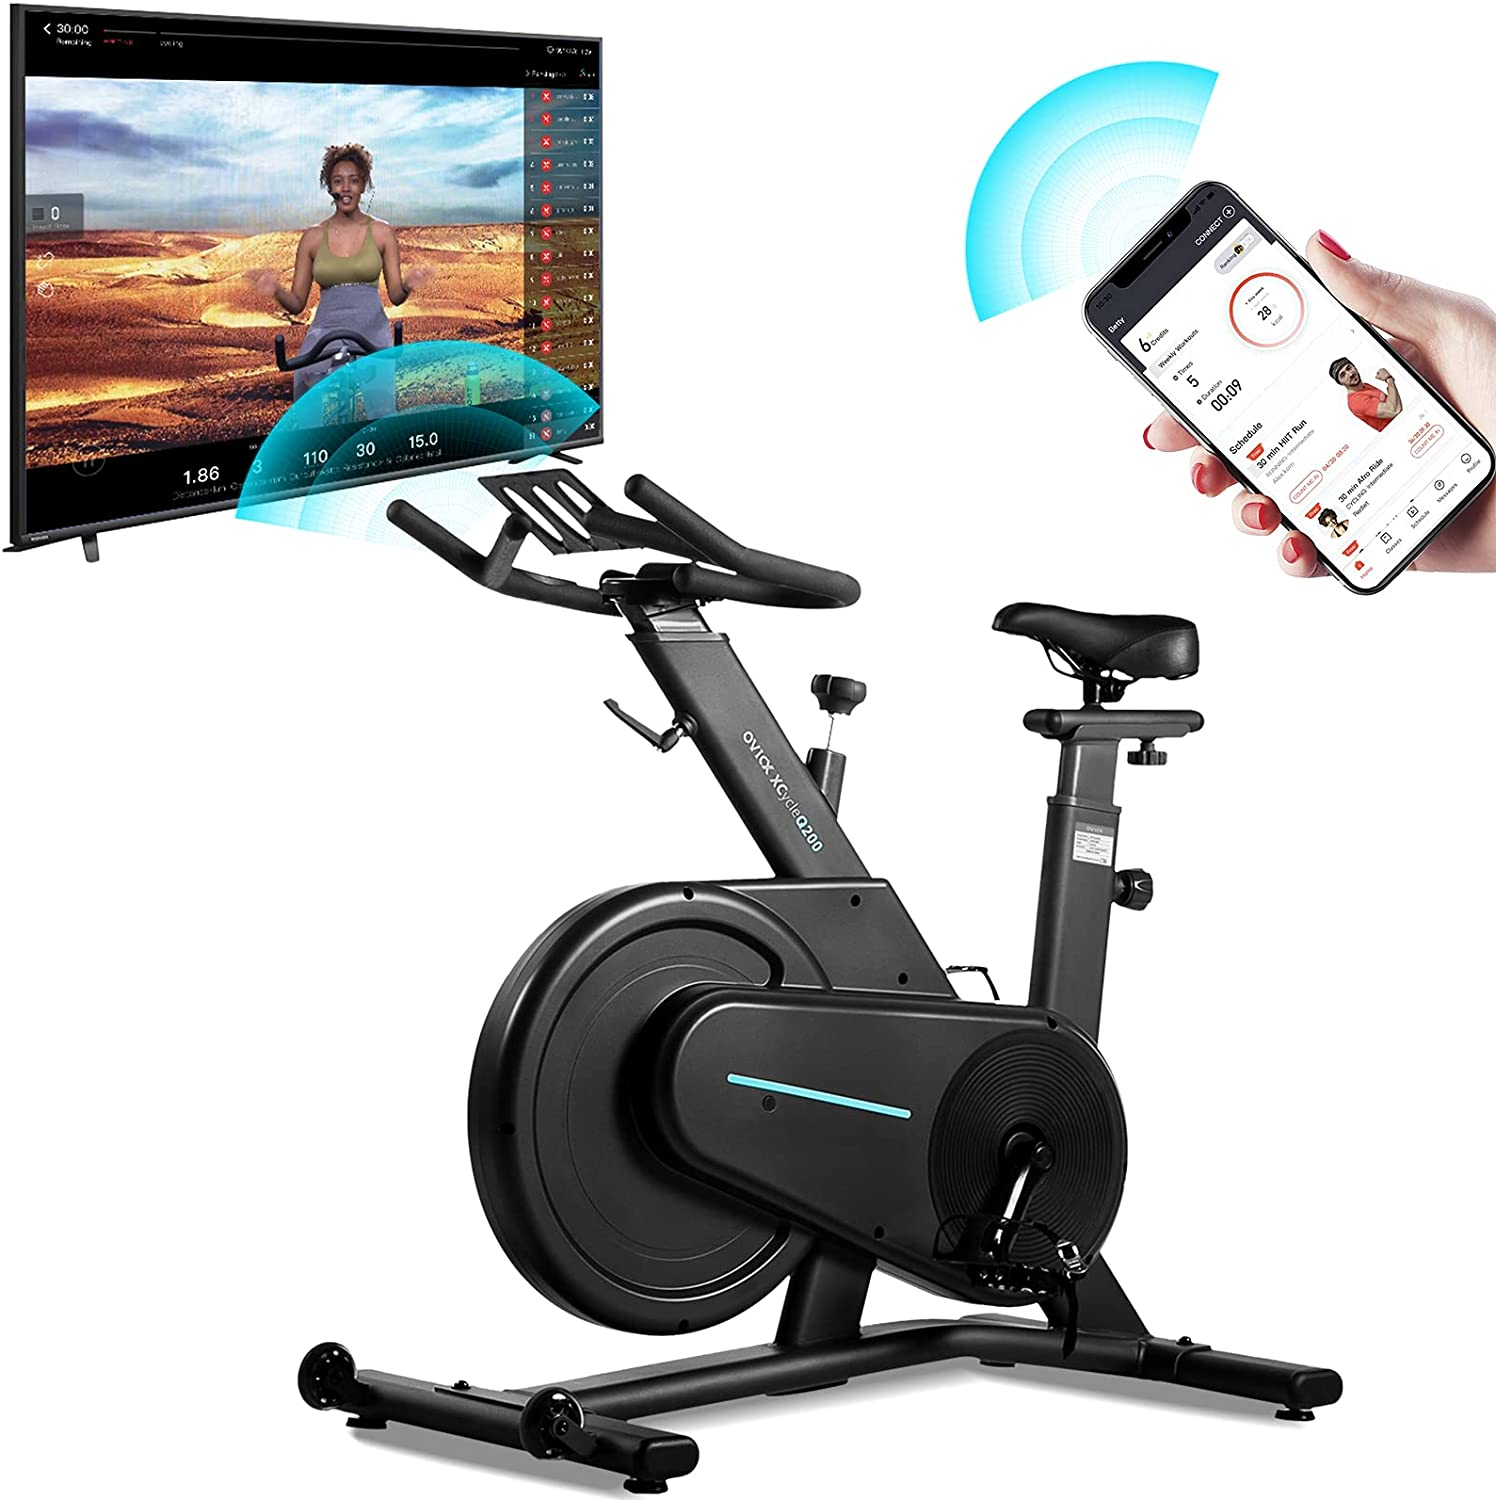 OVICX Magnetic Stationary Bike with Bluetooth Adjustable Professional Handlebar Belt Drive Indoor Cycling Workout Bike for Home Gym Workouts